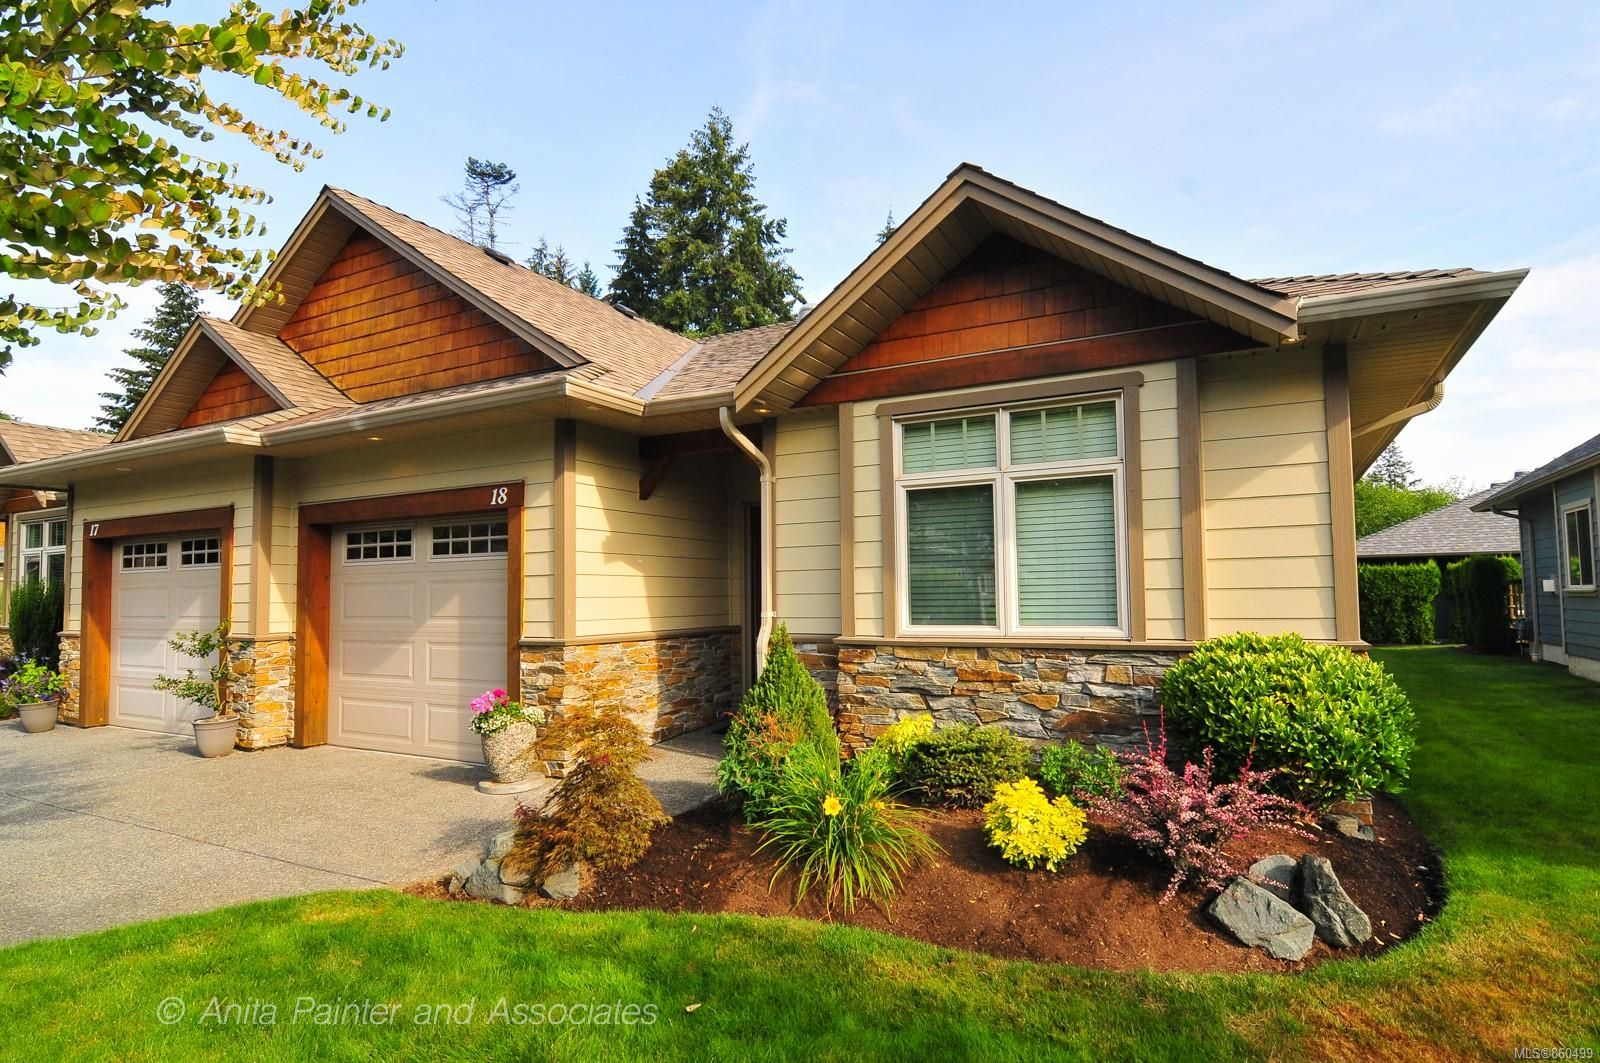 Main Photo: 18 48 S McPhedran Rd in : CR Campbell River Central Row/Townhouse for sale (Campbell River)  : MLS®# 860499